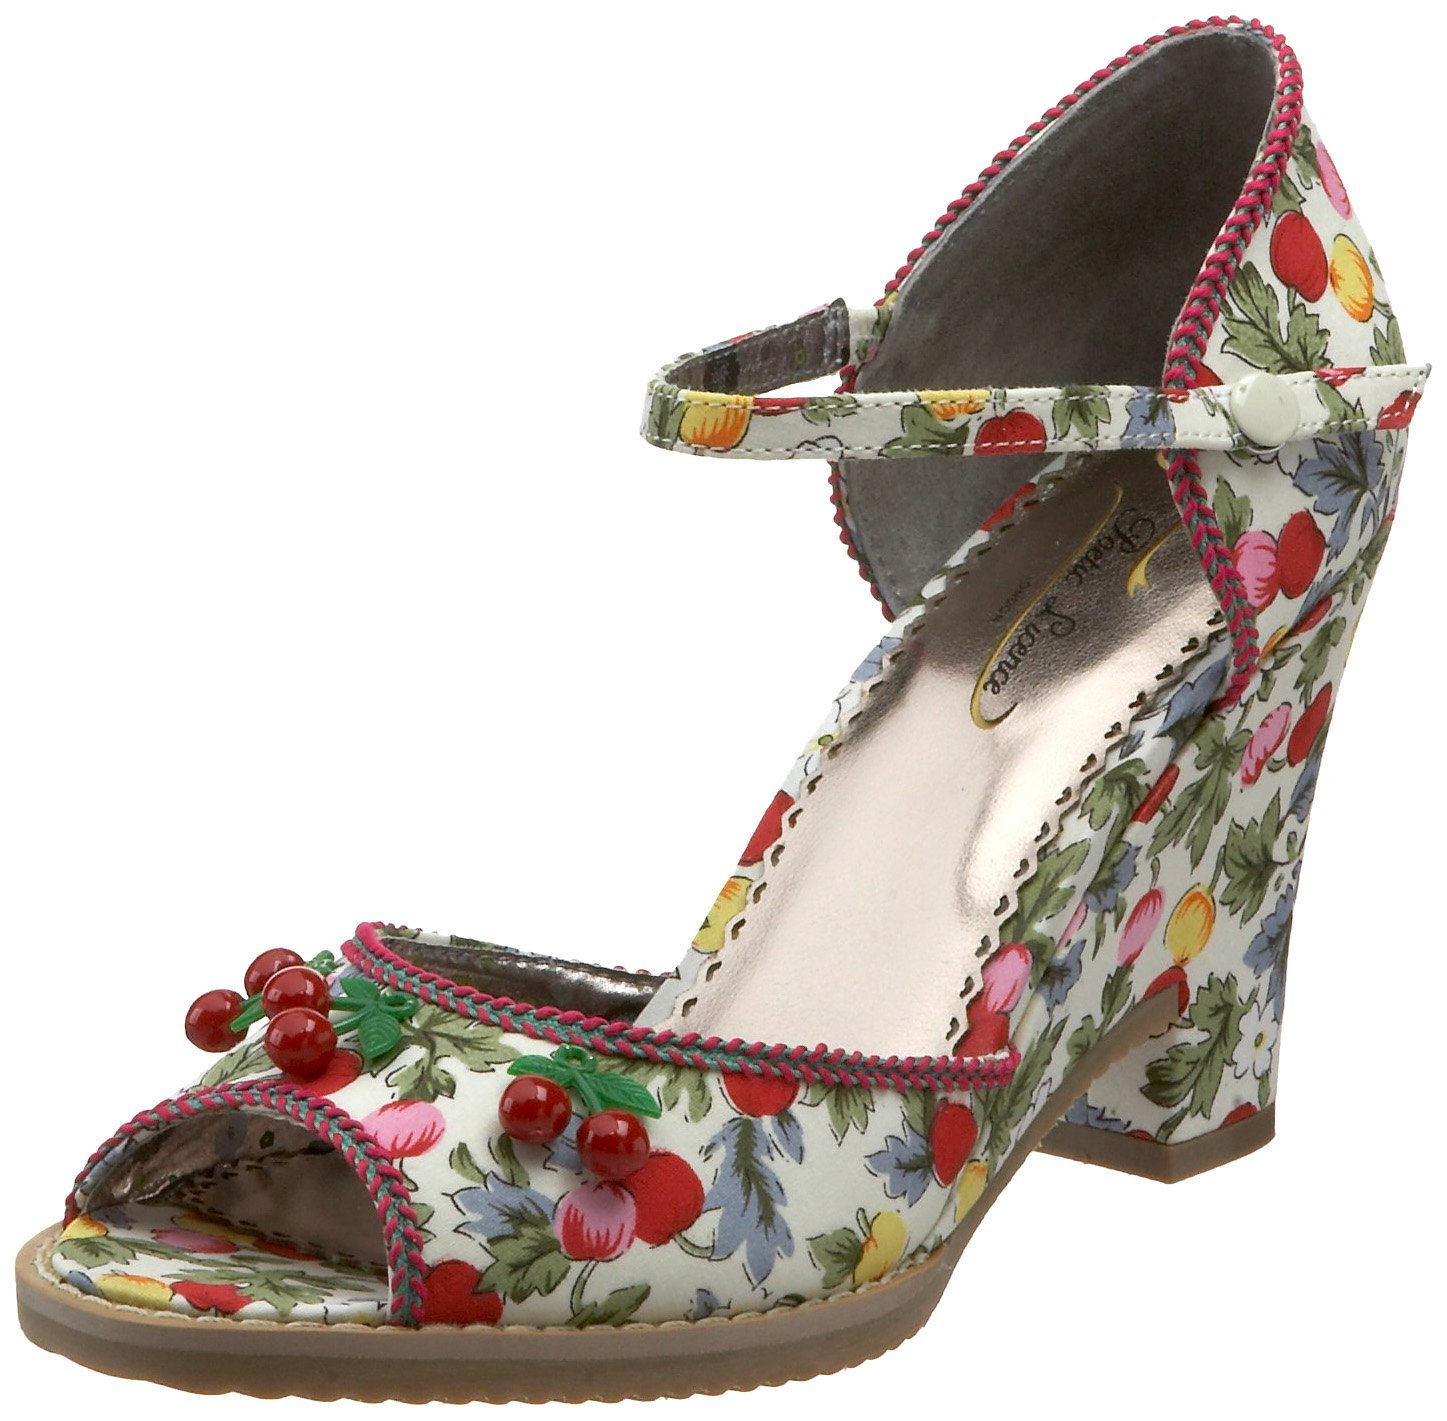 Vegan flower wedge heels